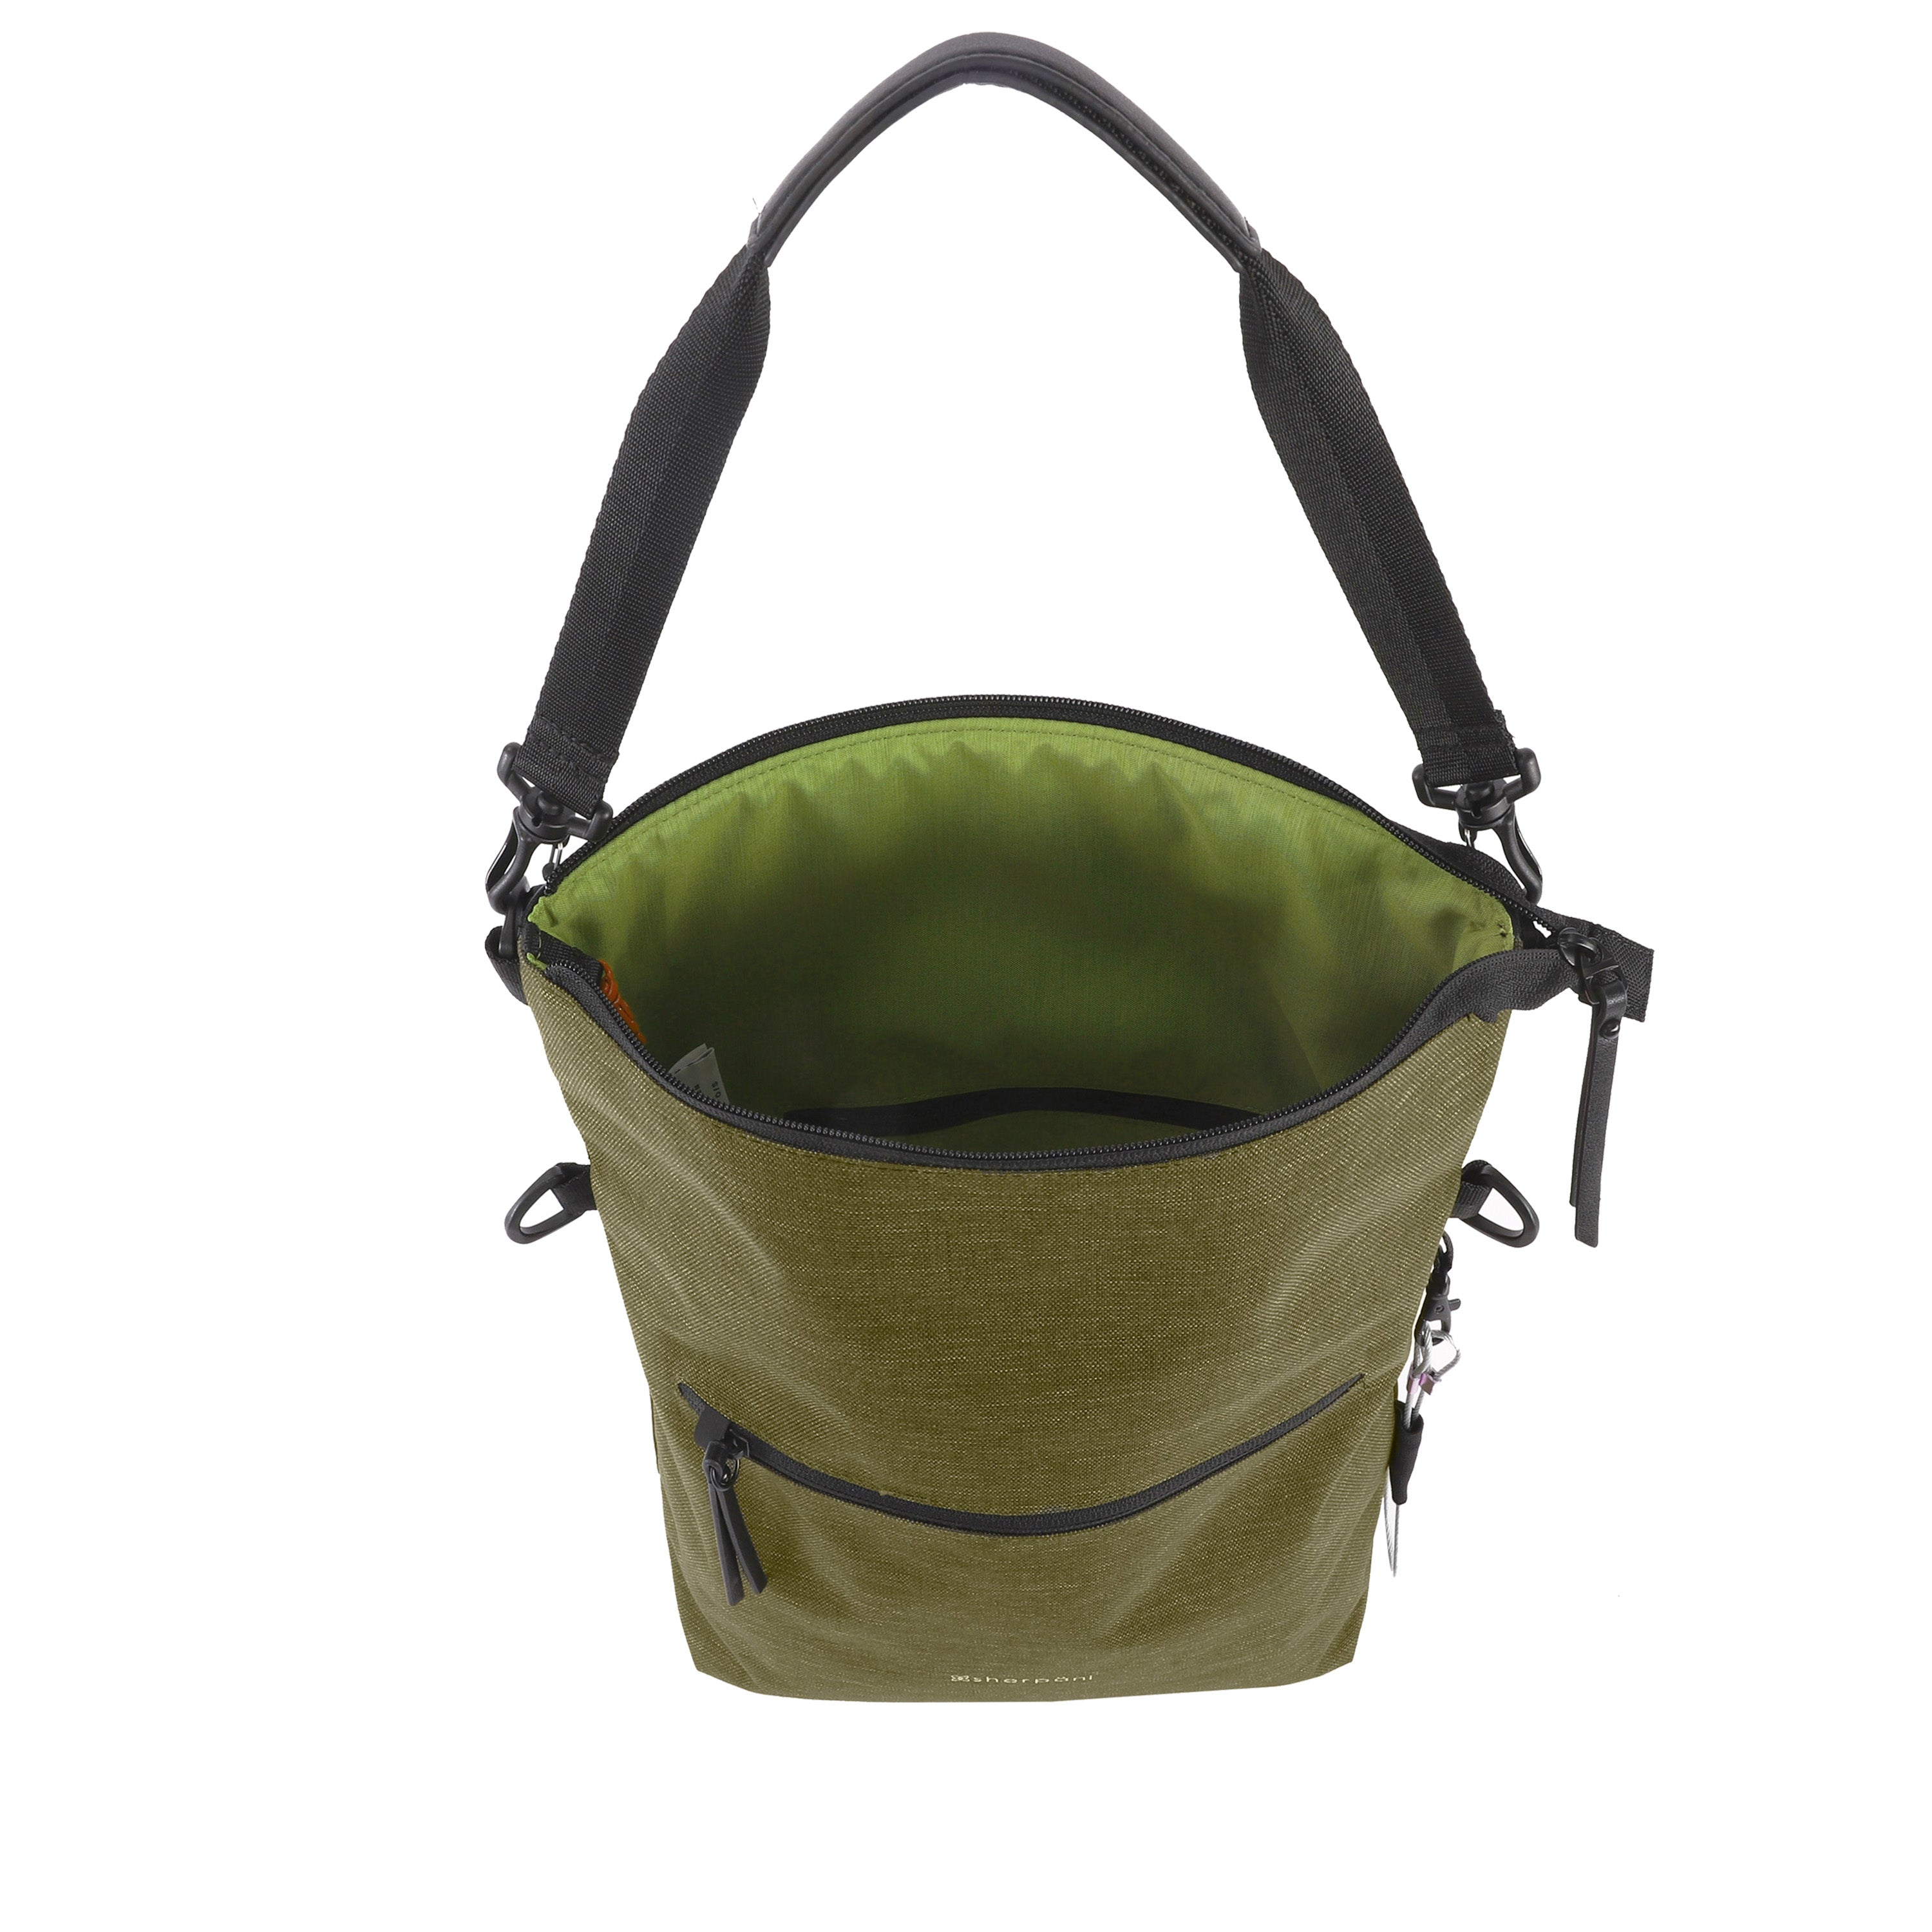 Green Anti Theft Reversible Crossbody (back viewinterior main zipper compartment) with anti-theft features